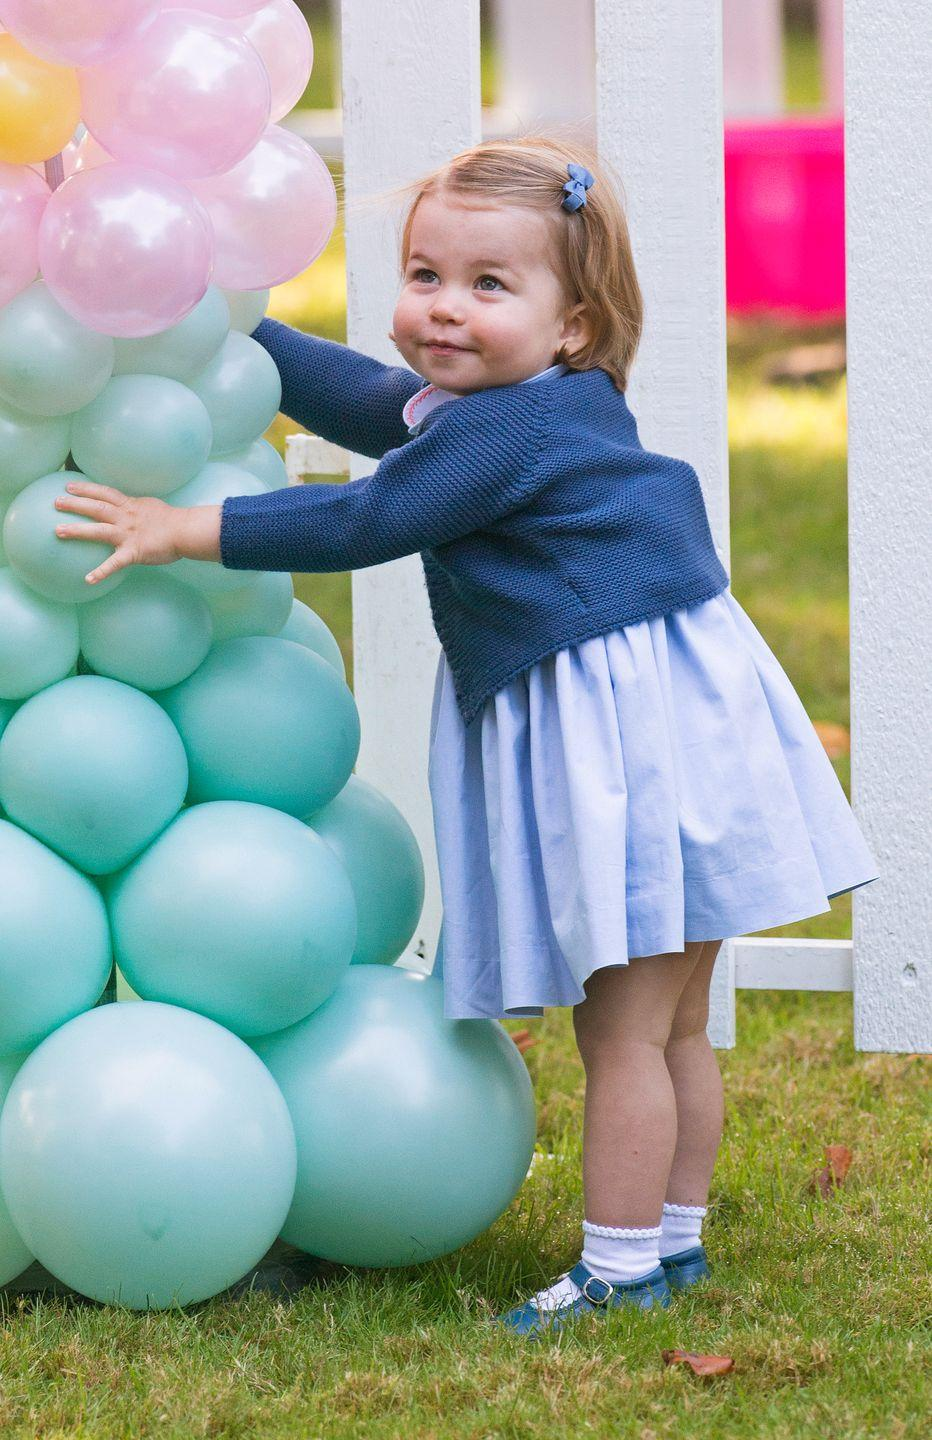 <p>She may be a royal, but first and foremost, Princess Charlotte is a toddler, and what 16-month-old doesn't love a good balloon? At a children's party for military families in Victoria, she was seen fully freaking out over a colorful balloon arch.</p>